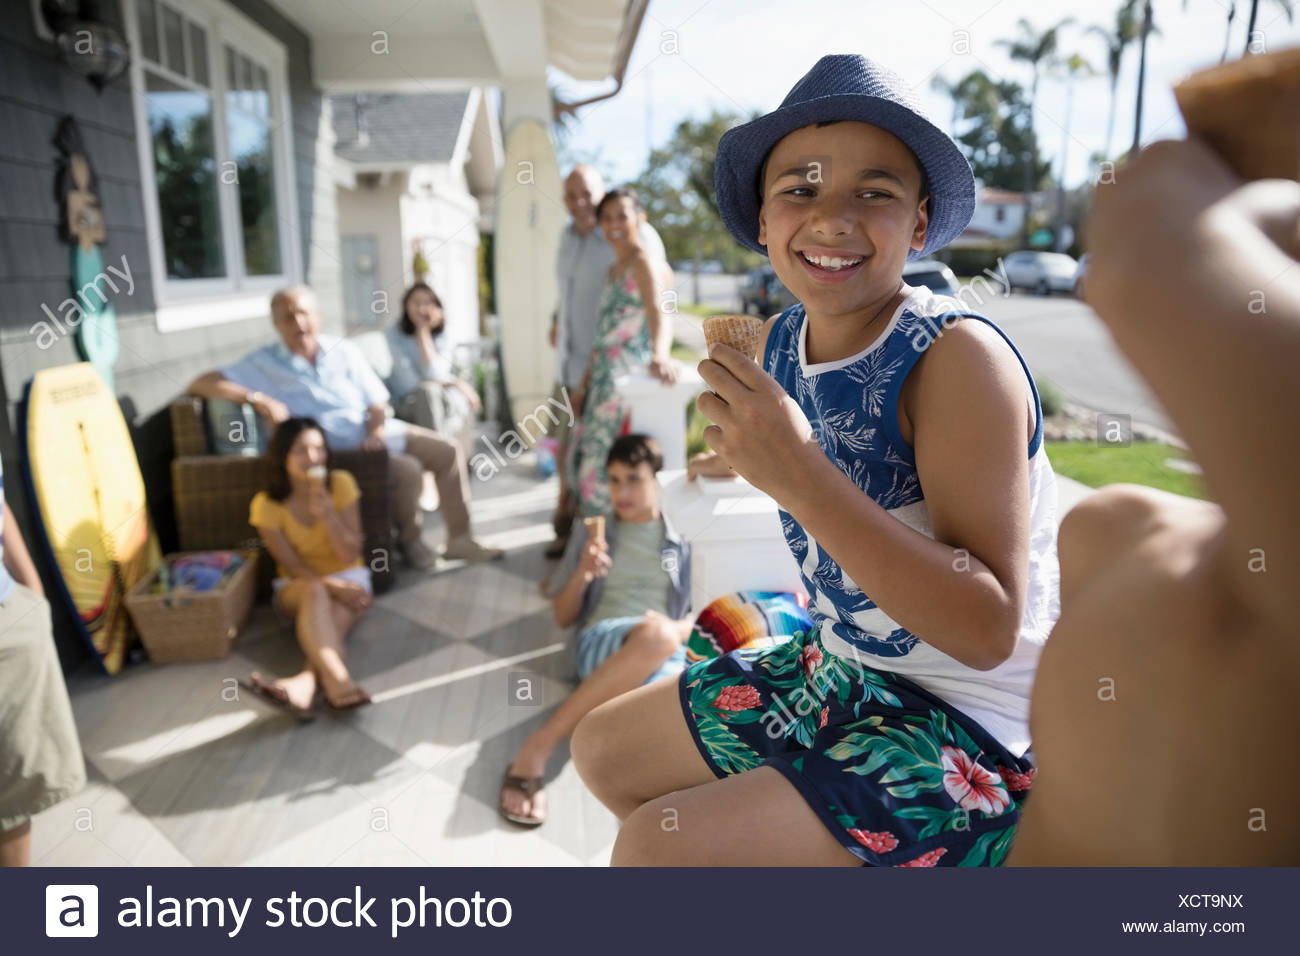 Smiling boy eating ice cream cone with family on summer beach house porch - Stock Image